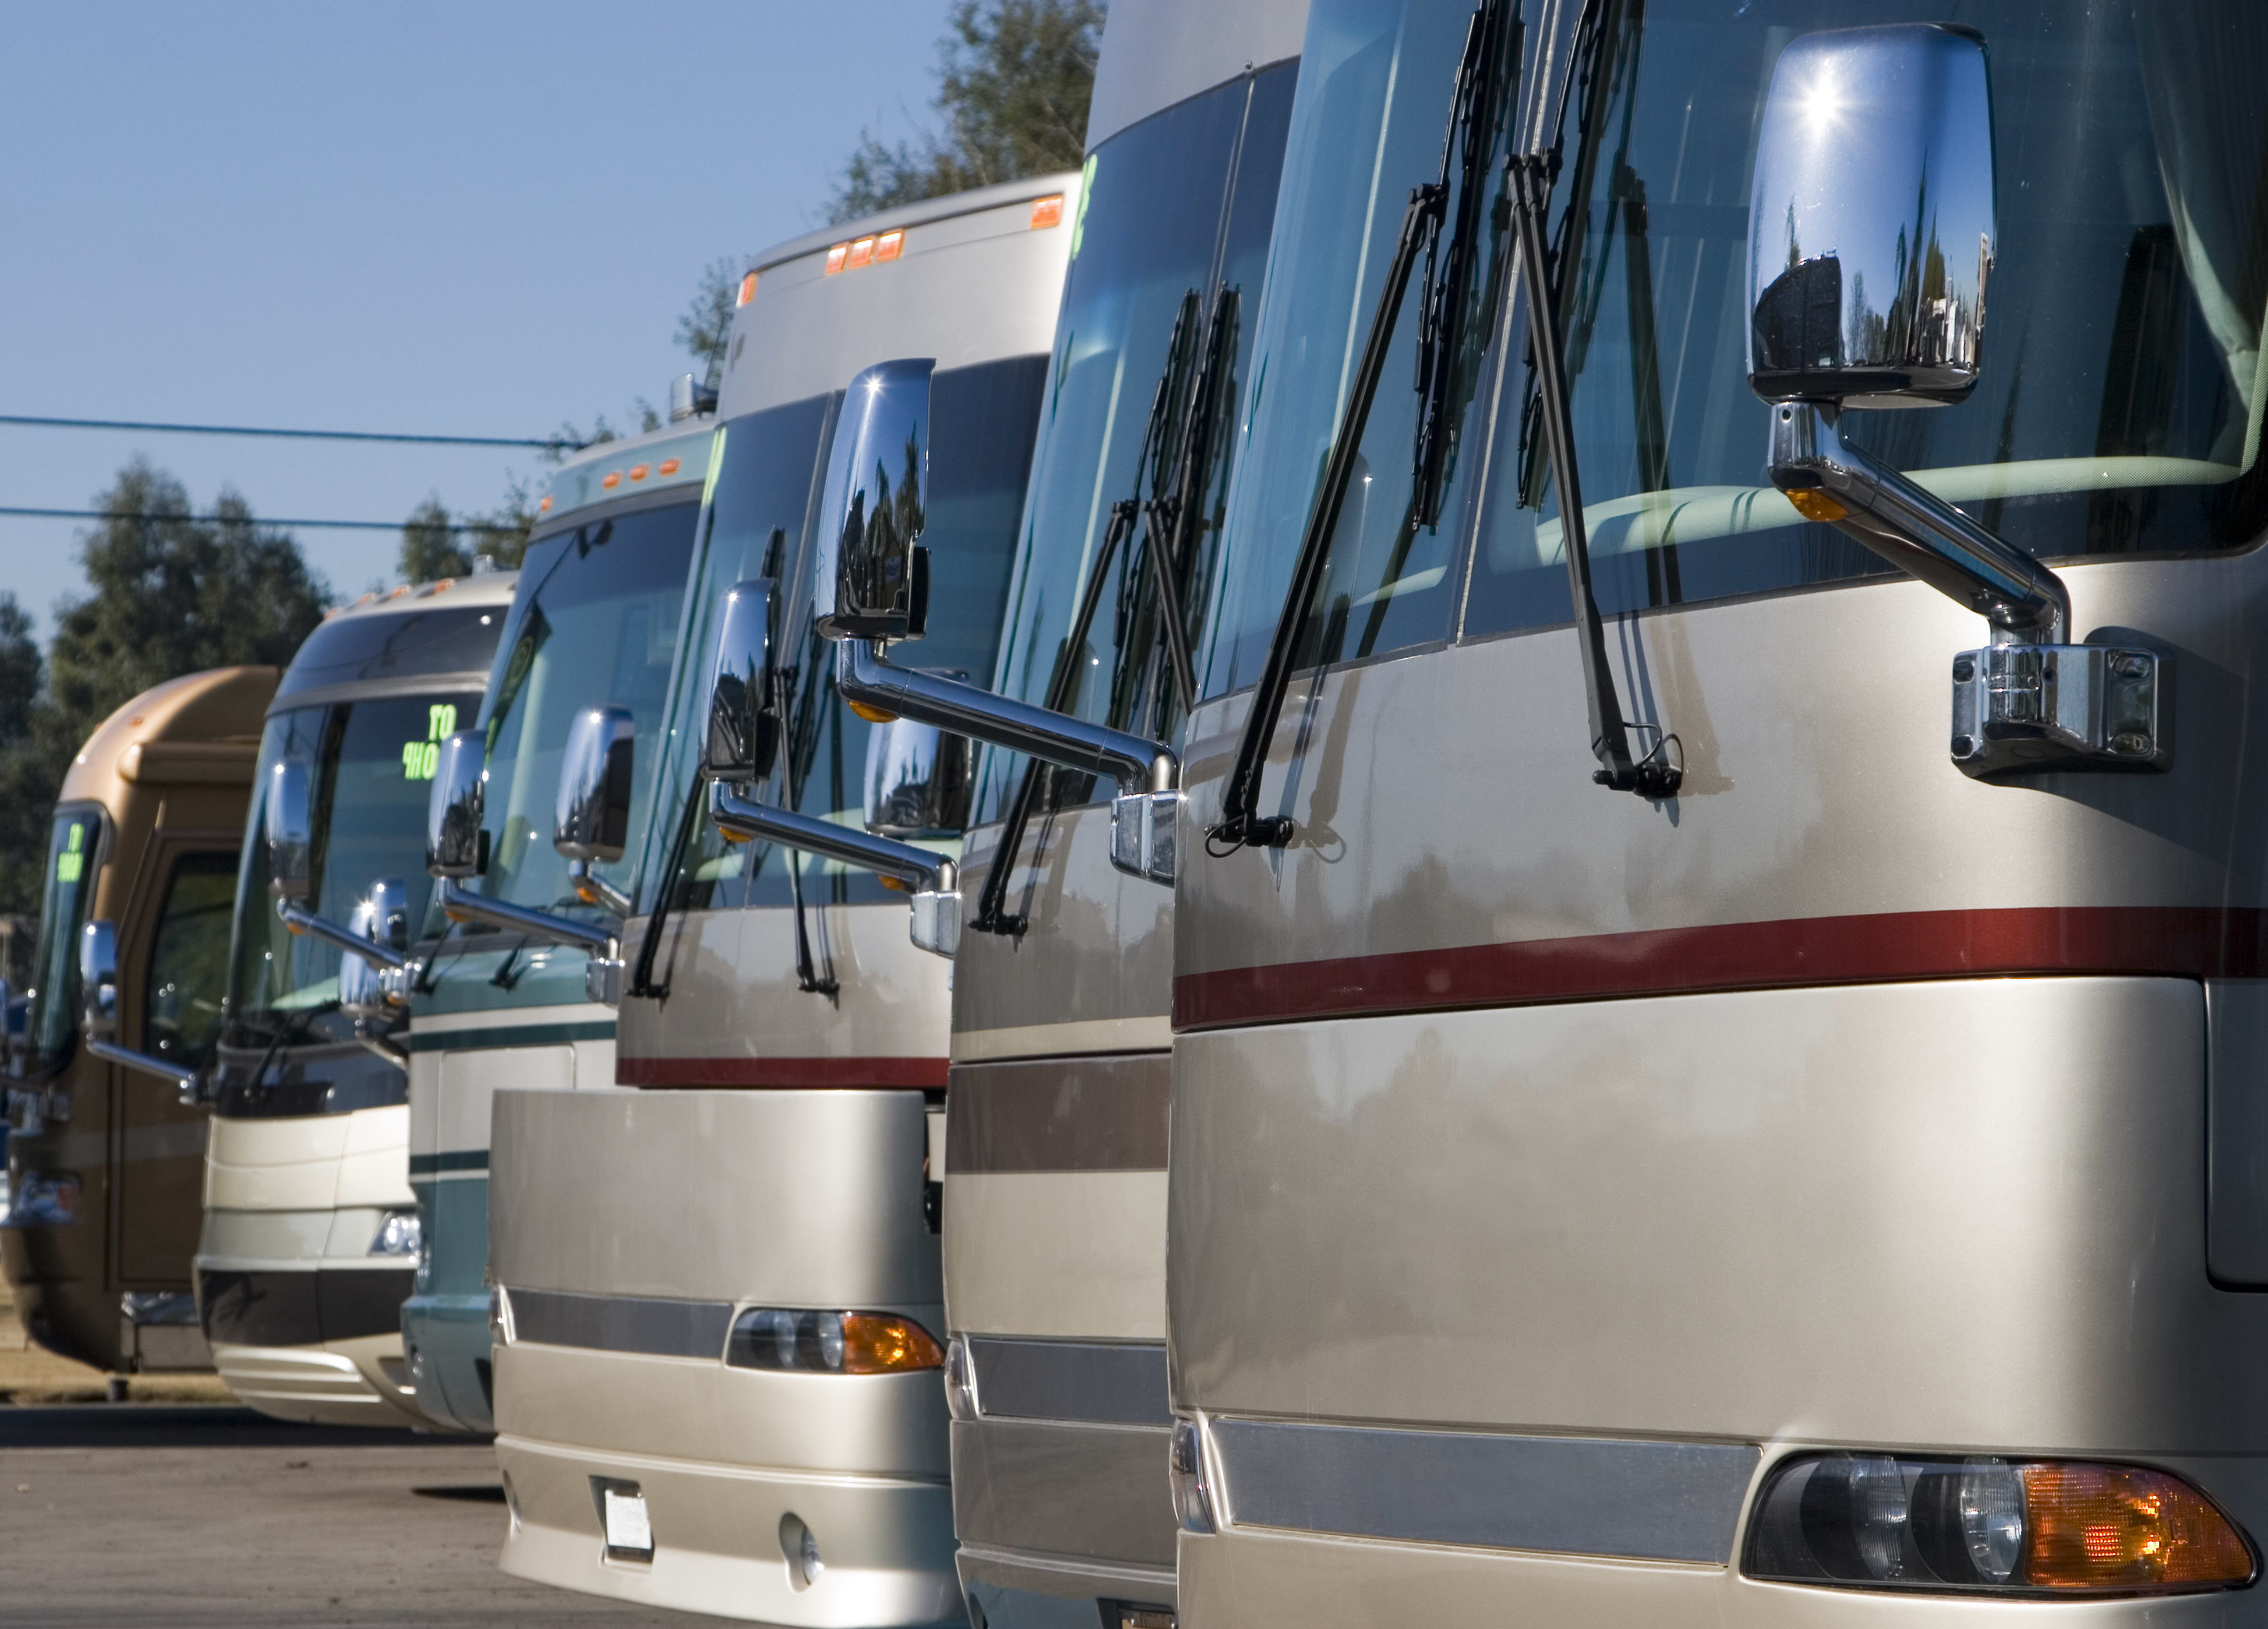 A row of RV's at a dealership.